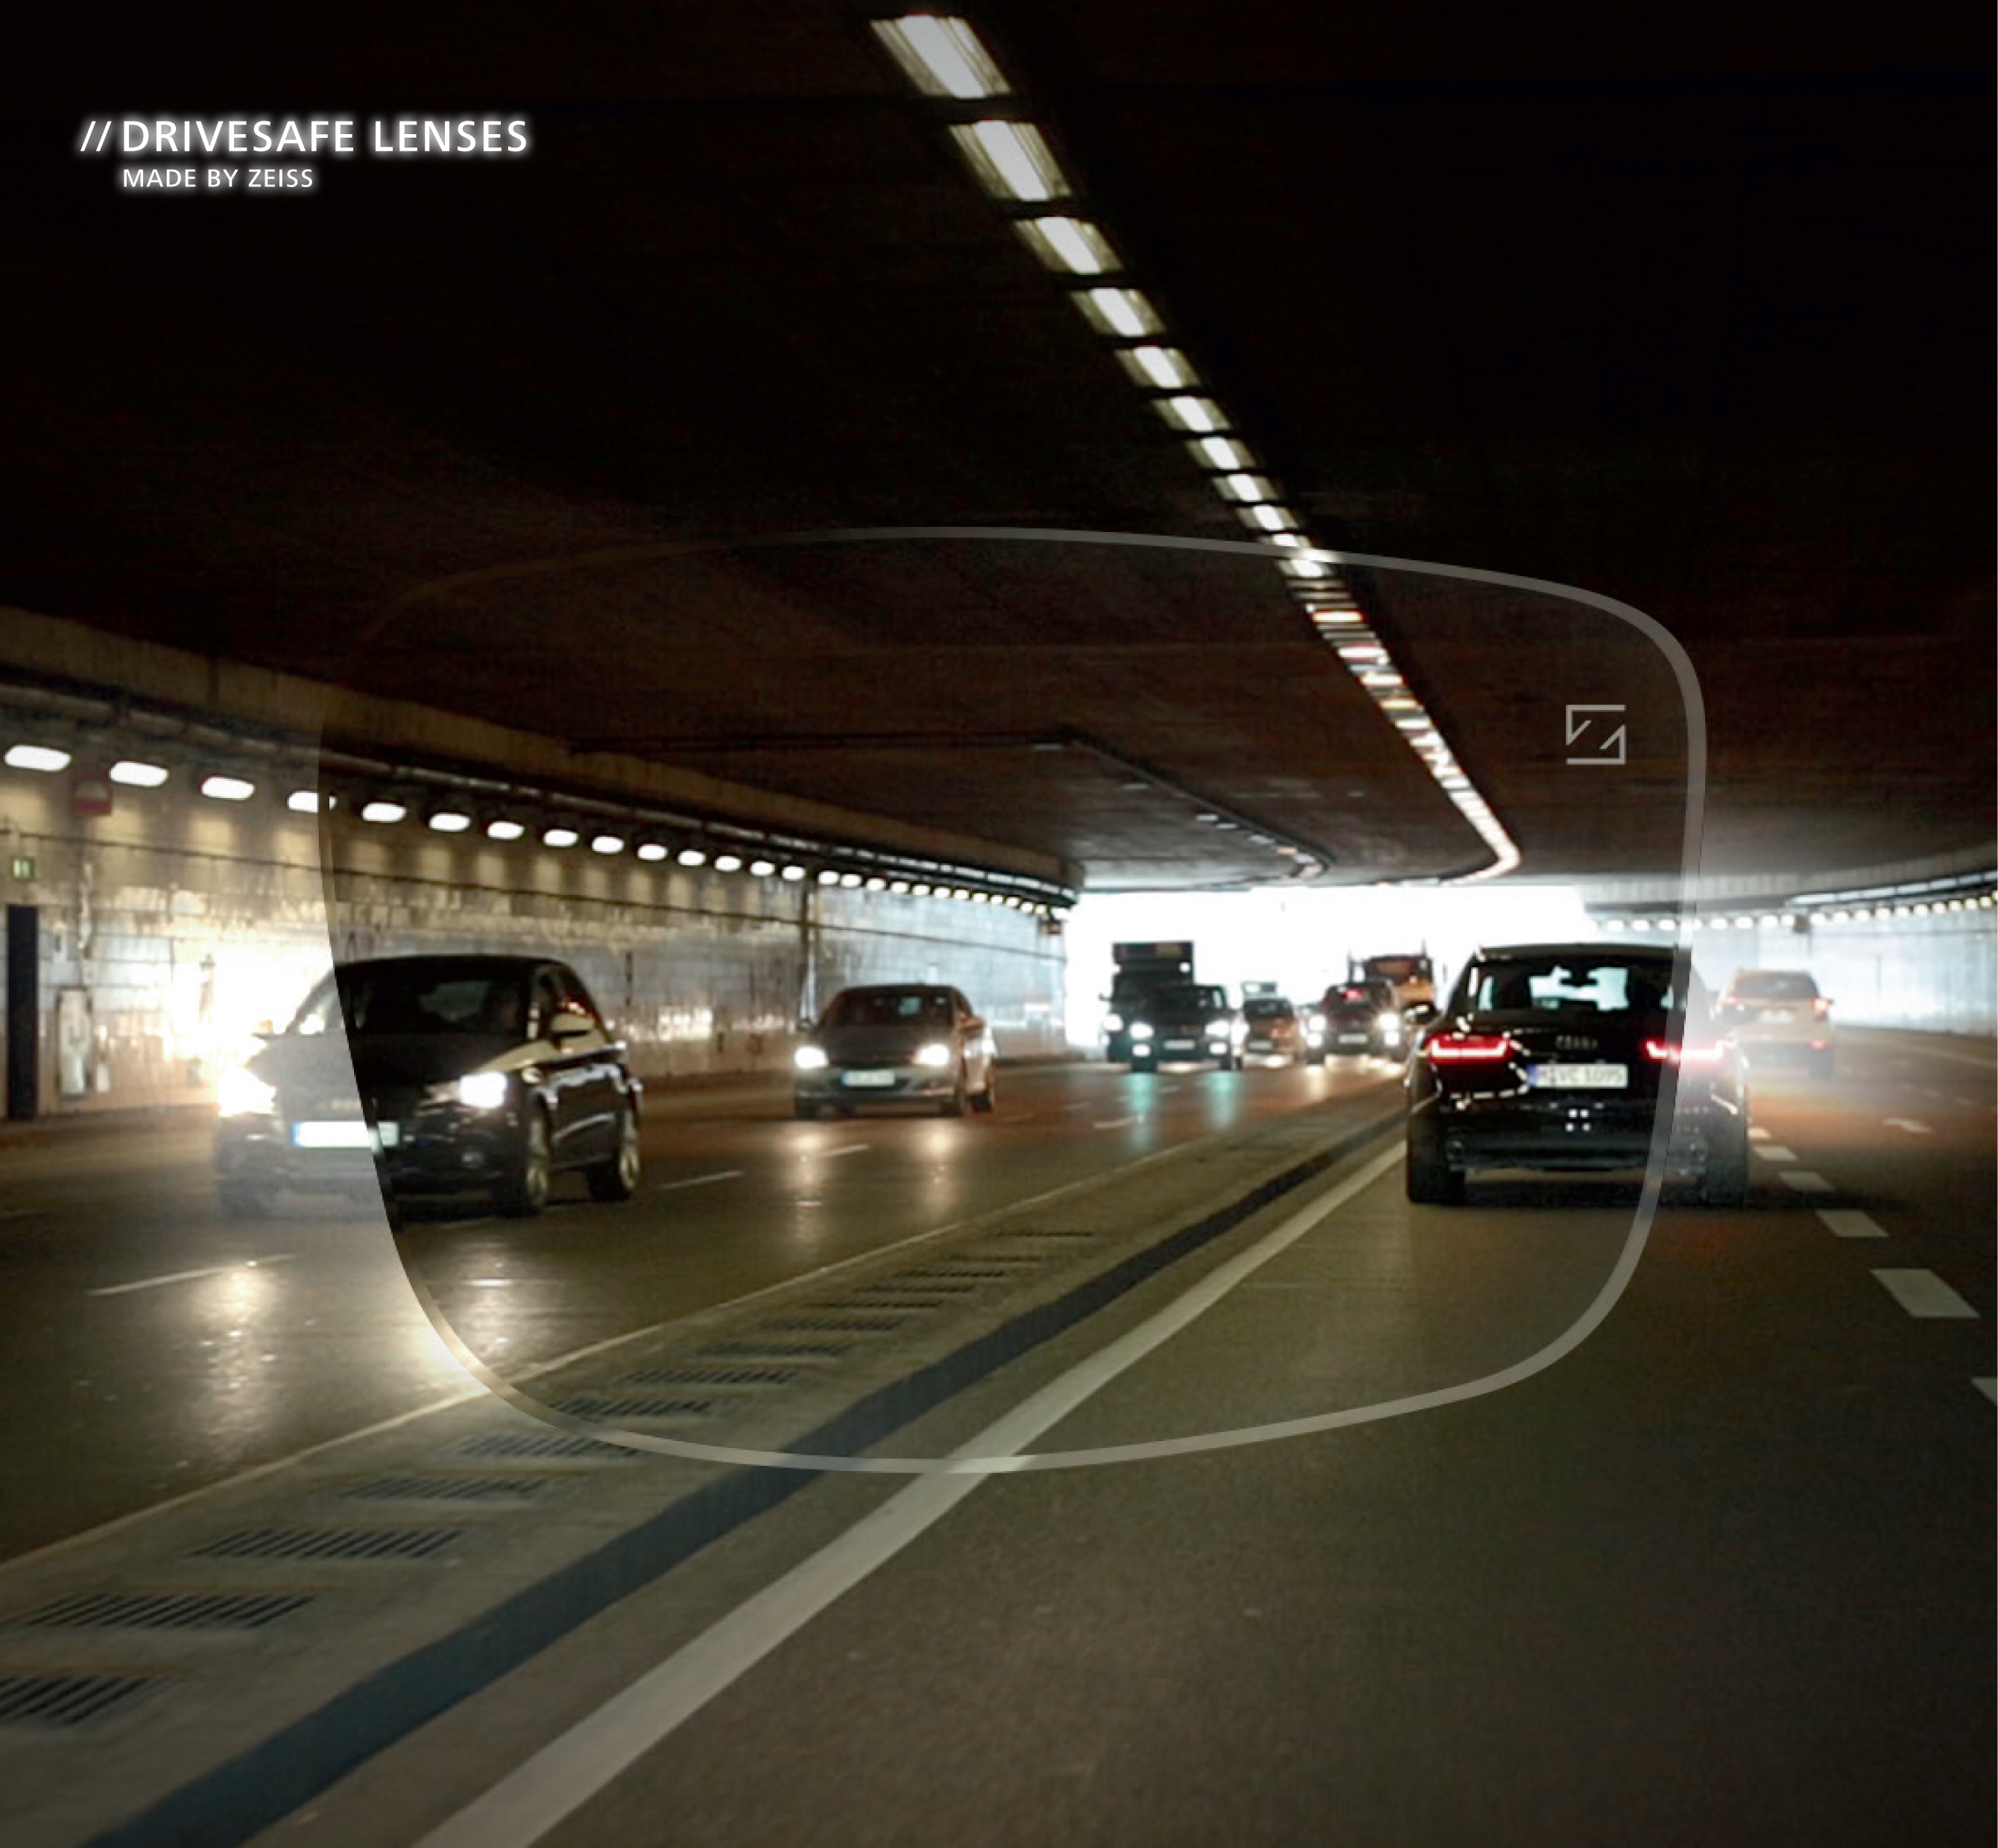 Zeiss DriveSafe in Tunnel Lighting